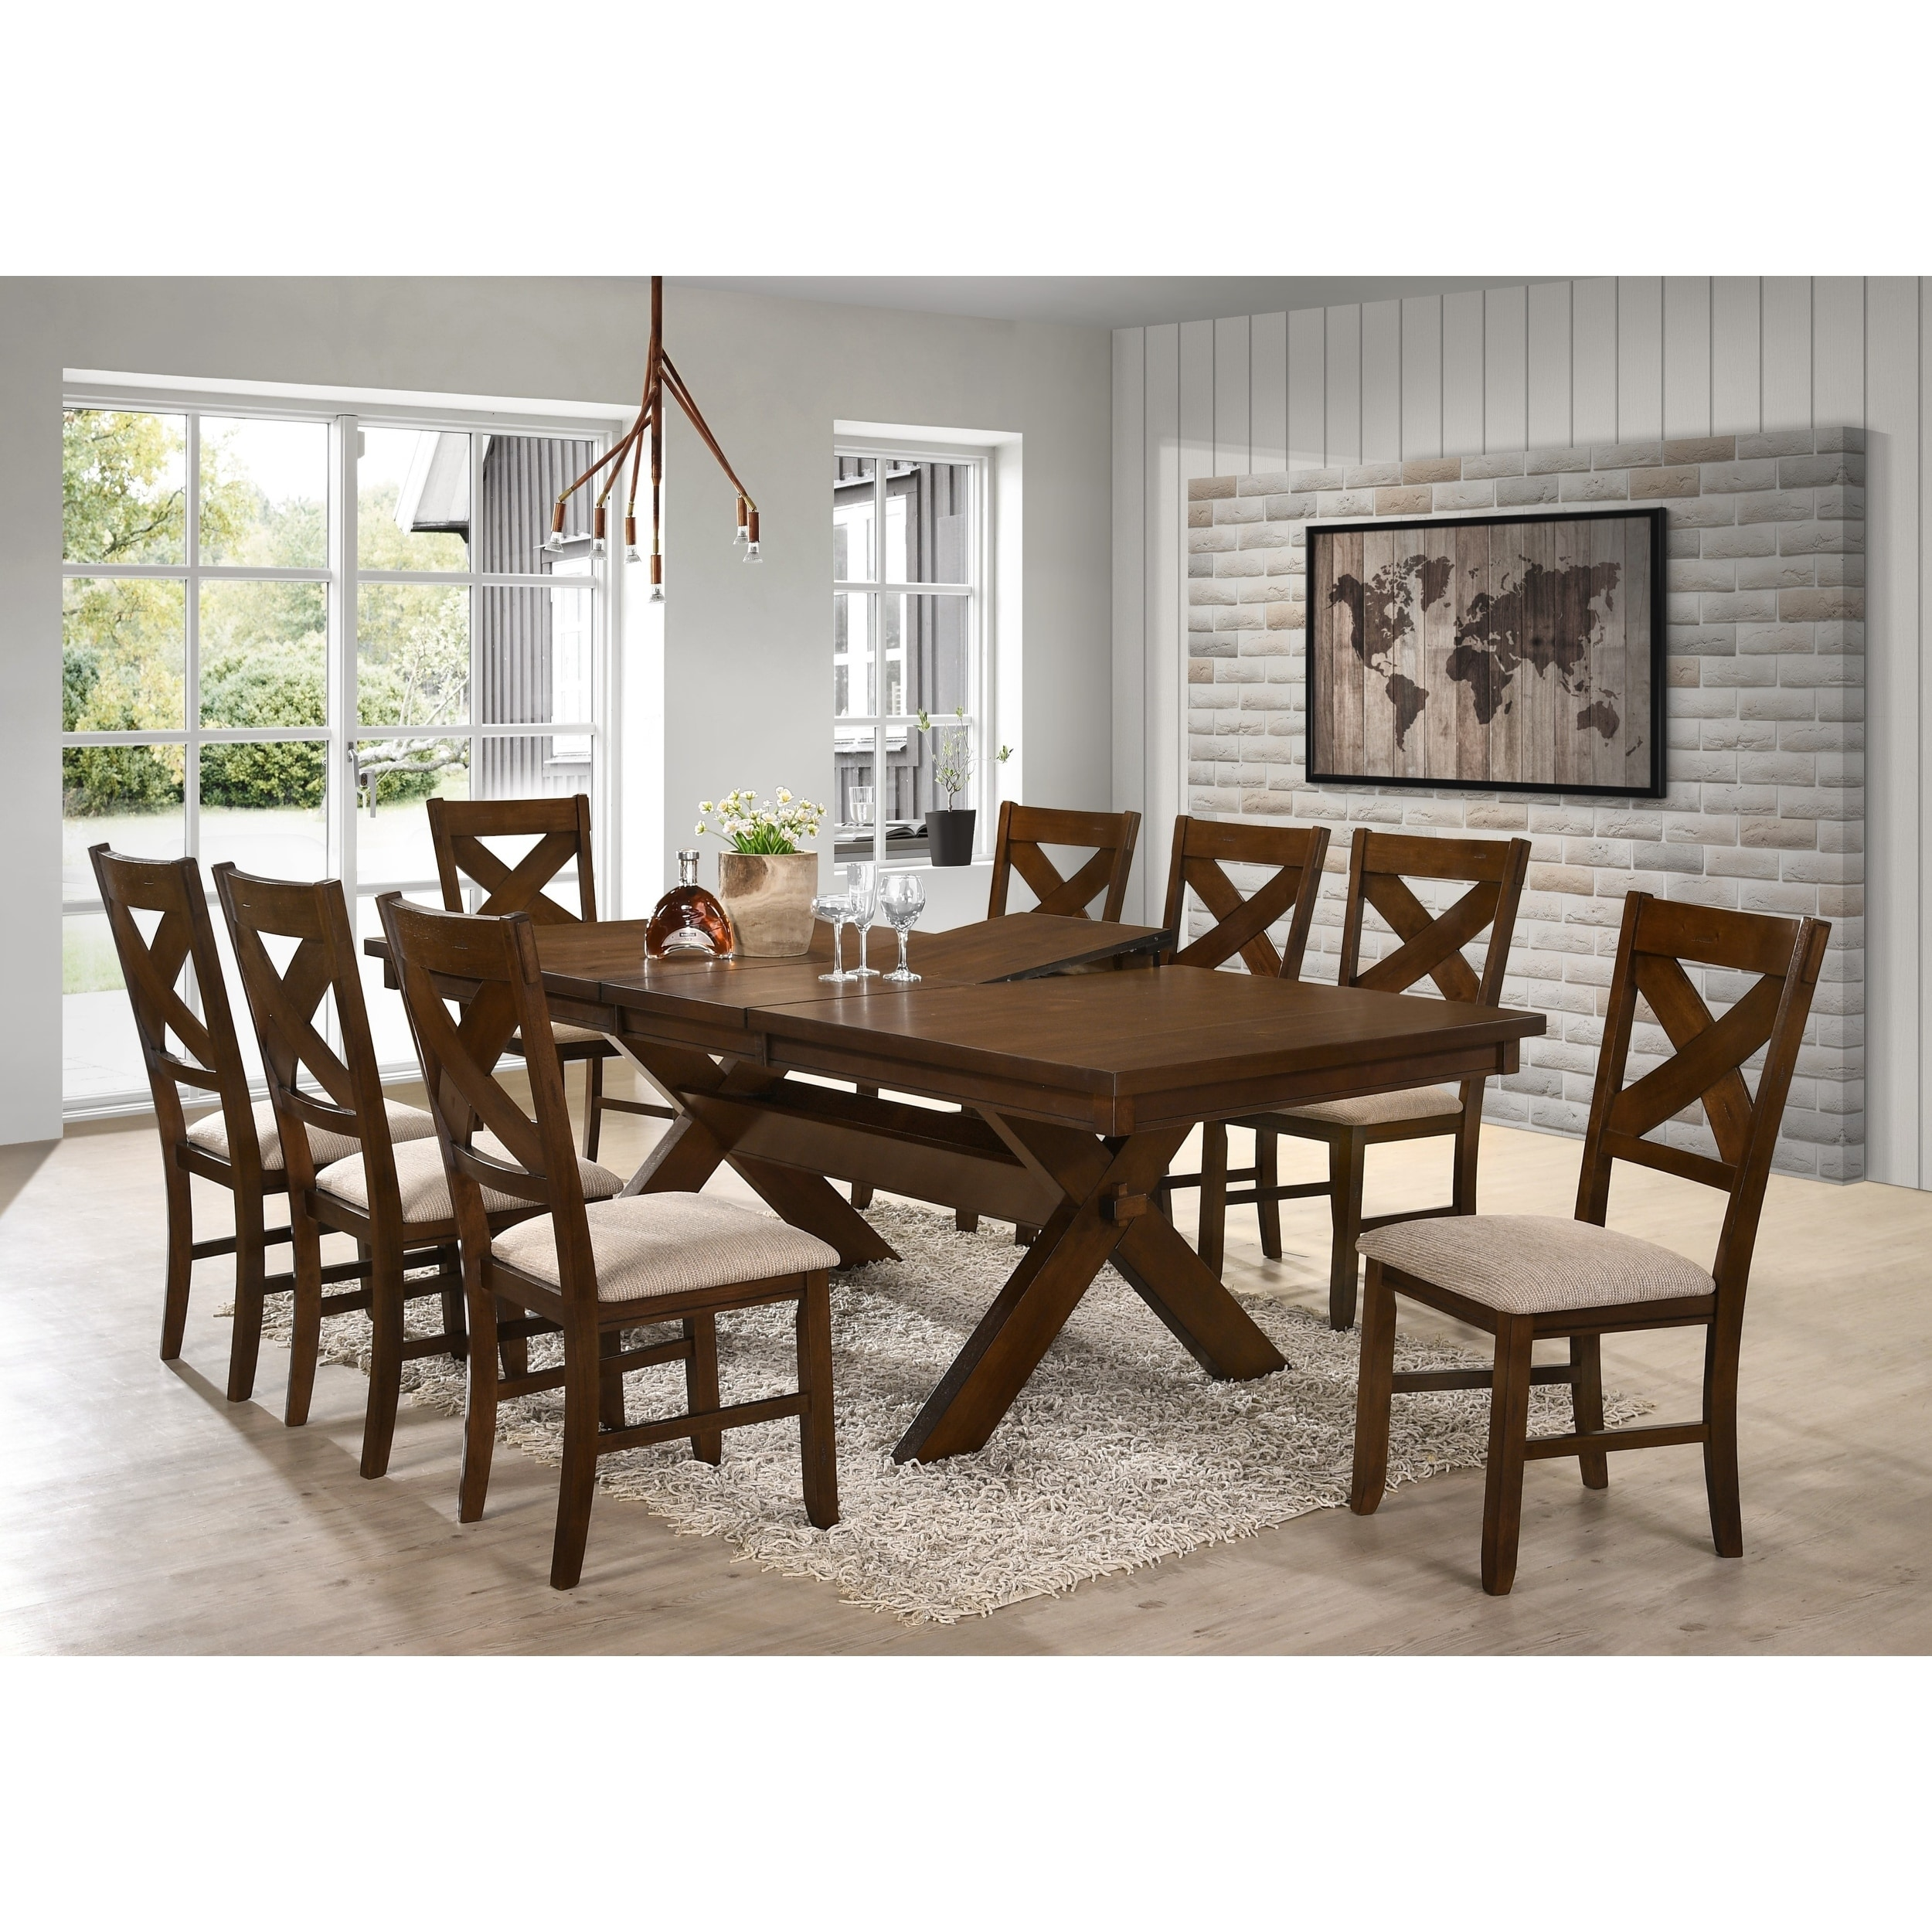 8 Chair Dining Set 9 Piece Solid Wood Dining Set With Table And 8 Chairs